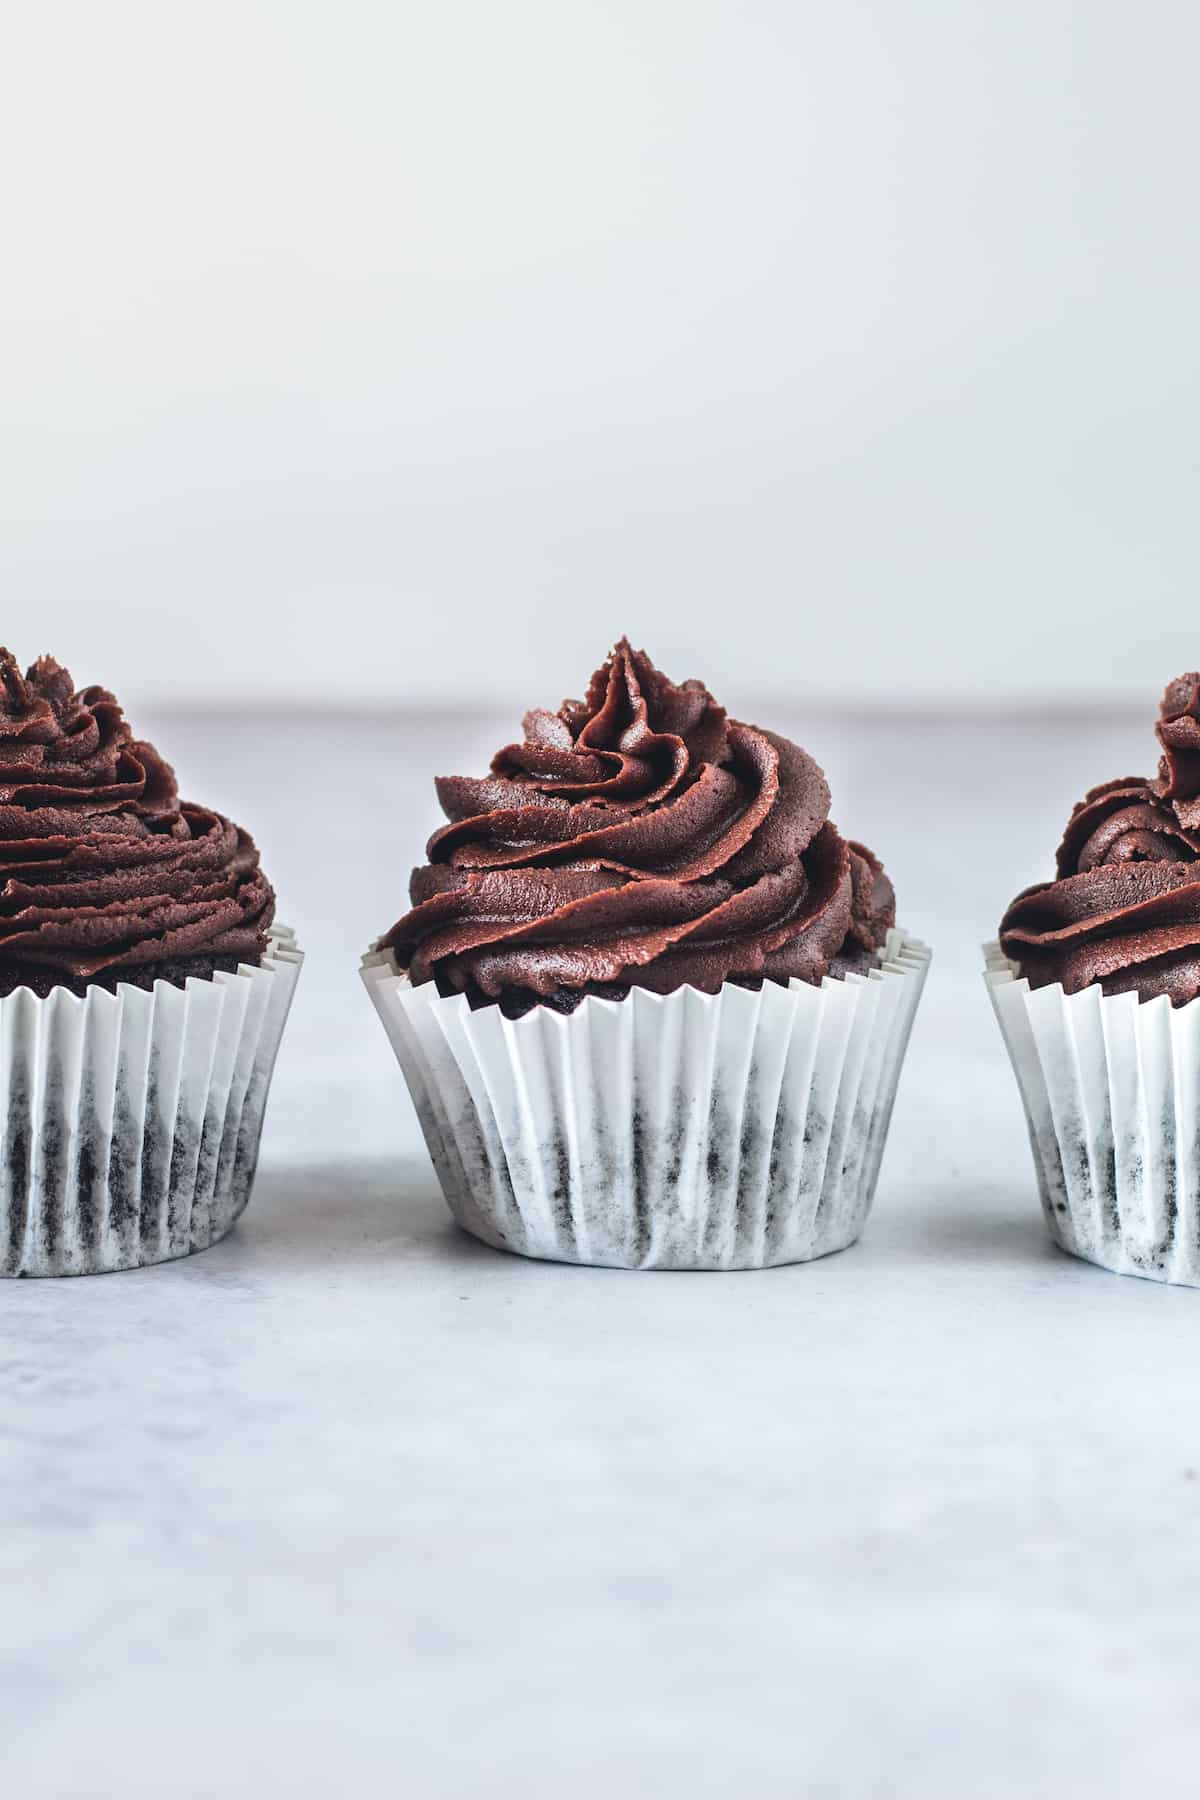 Three Gluten Free Chocolate Cupcakes Lined Up on a White Surface